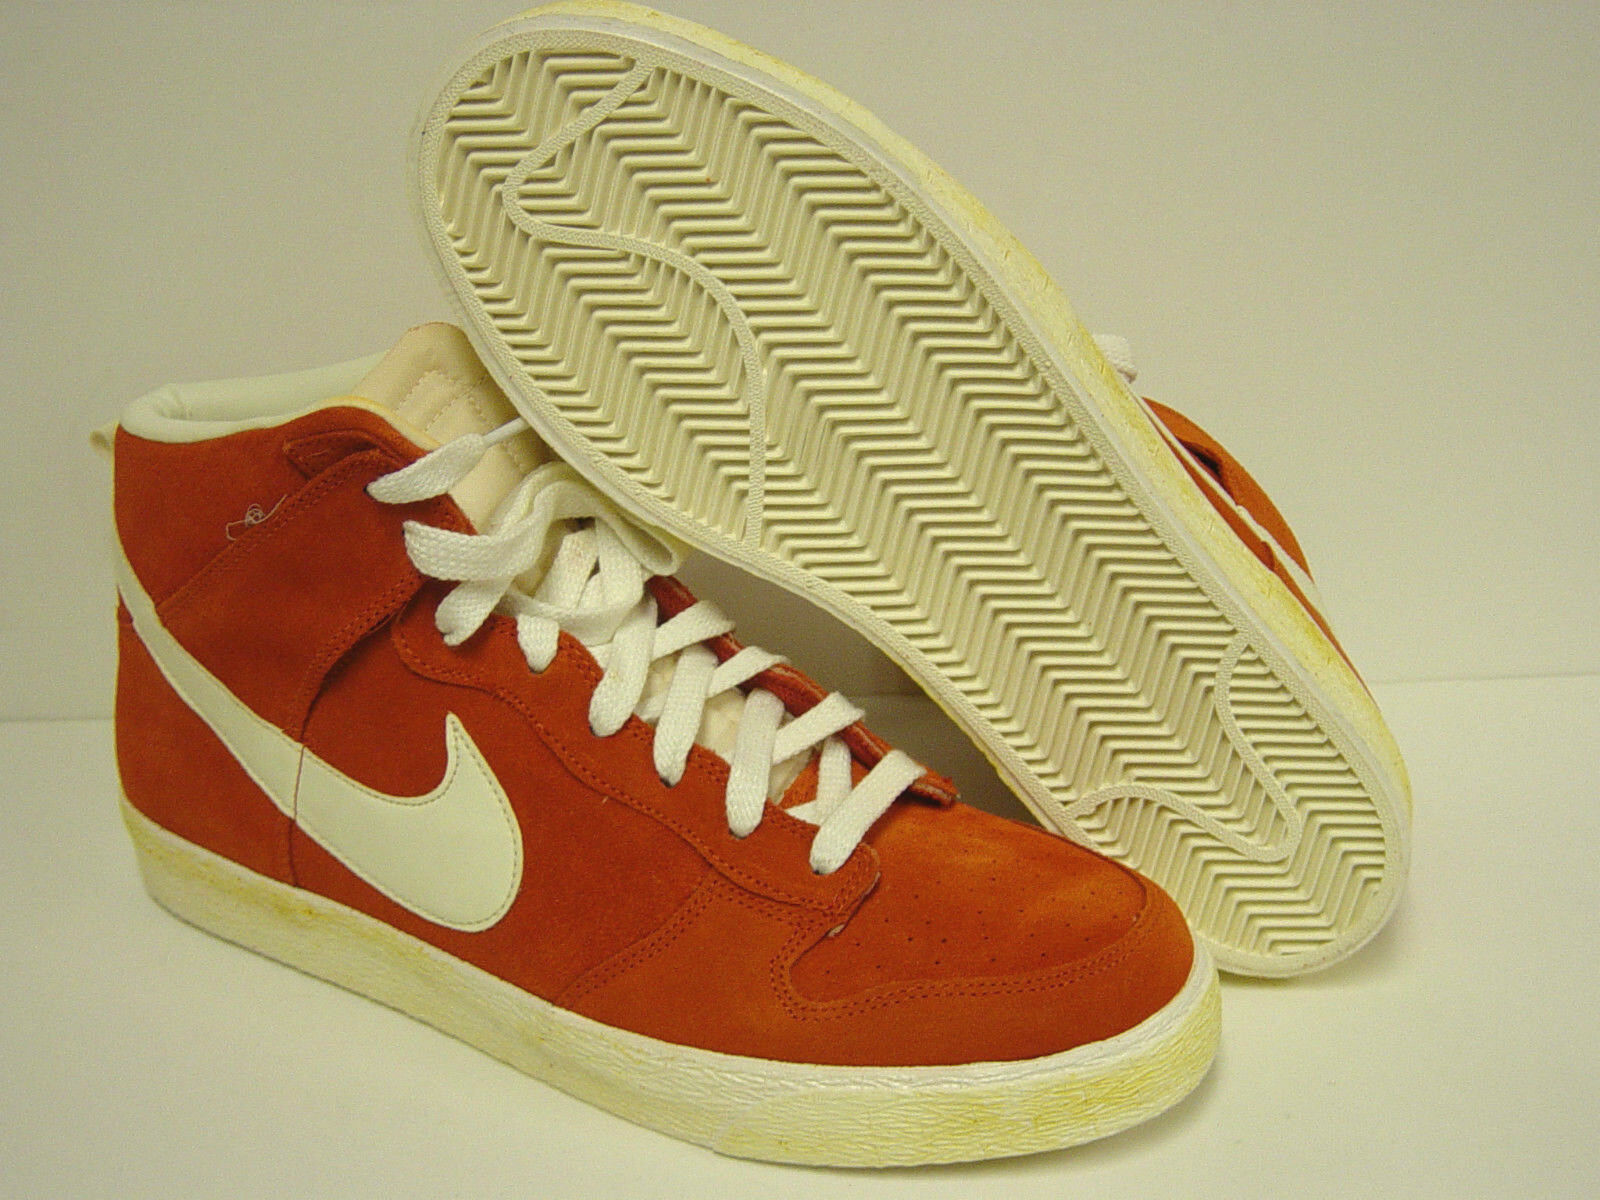 NEW Mens NIKE DUNK High AC 398263 801 DARK COPPER Sneakers Shoes Deadstock